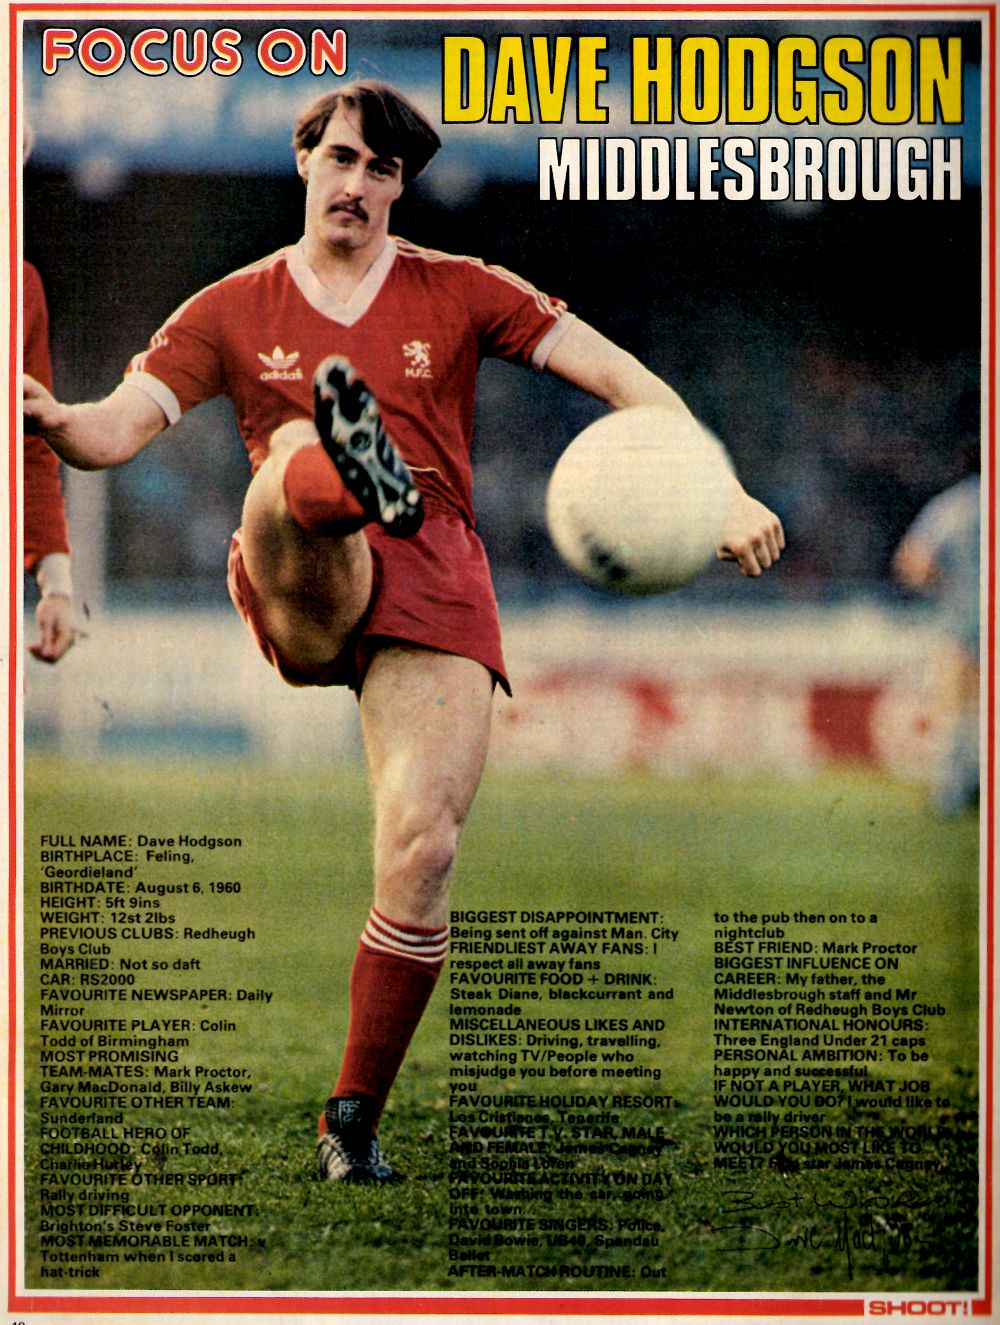 Focus on Middlesbrough's Dave Hodgson